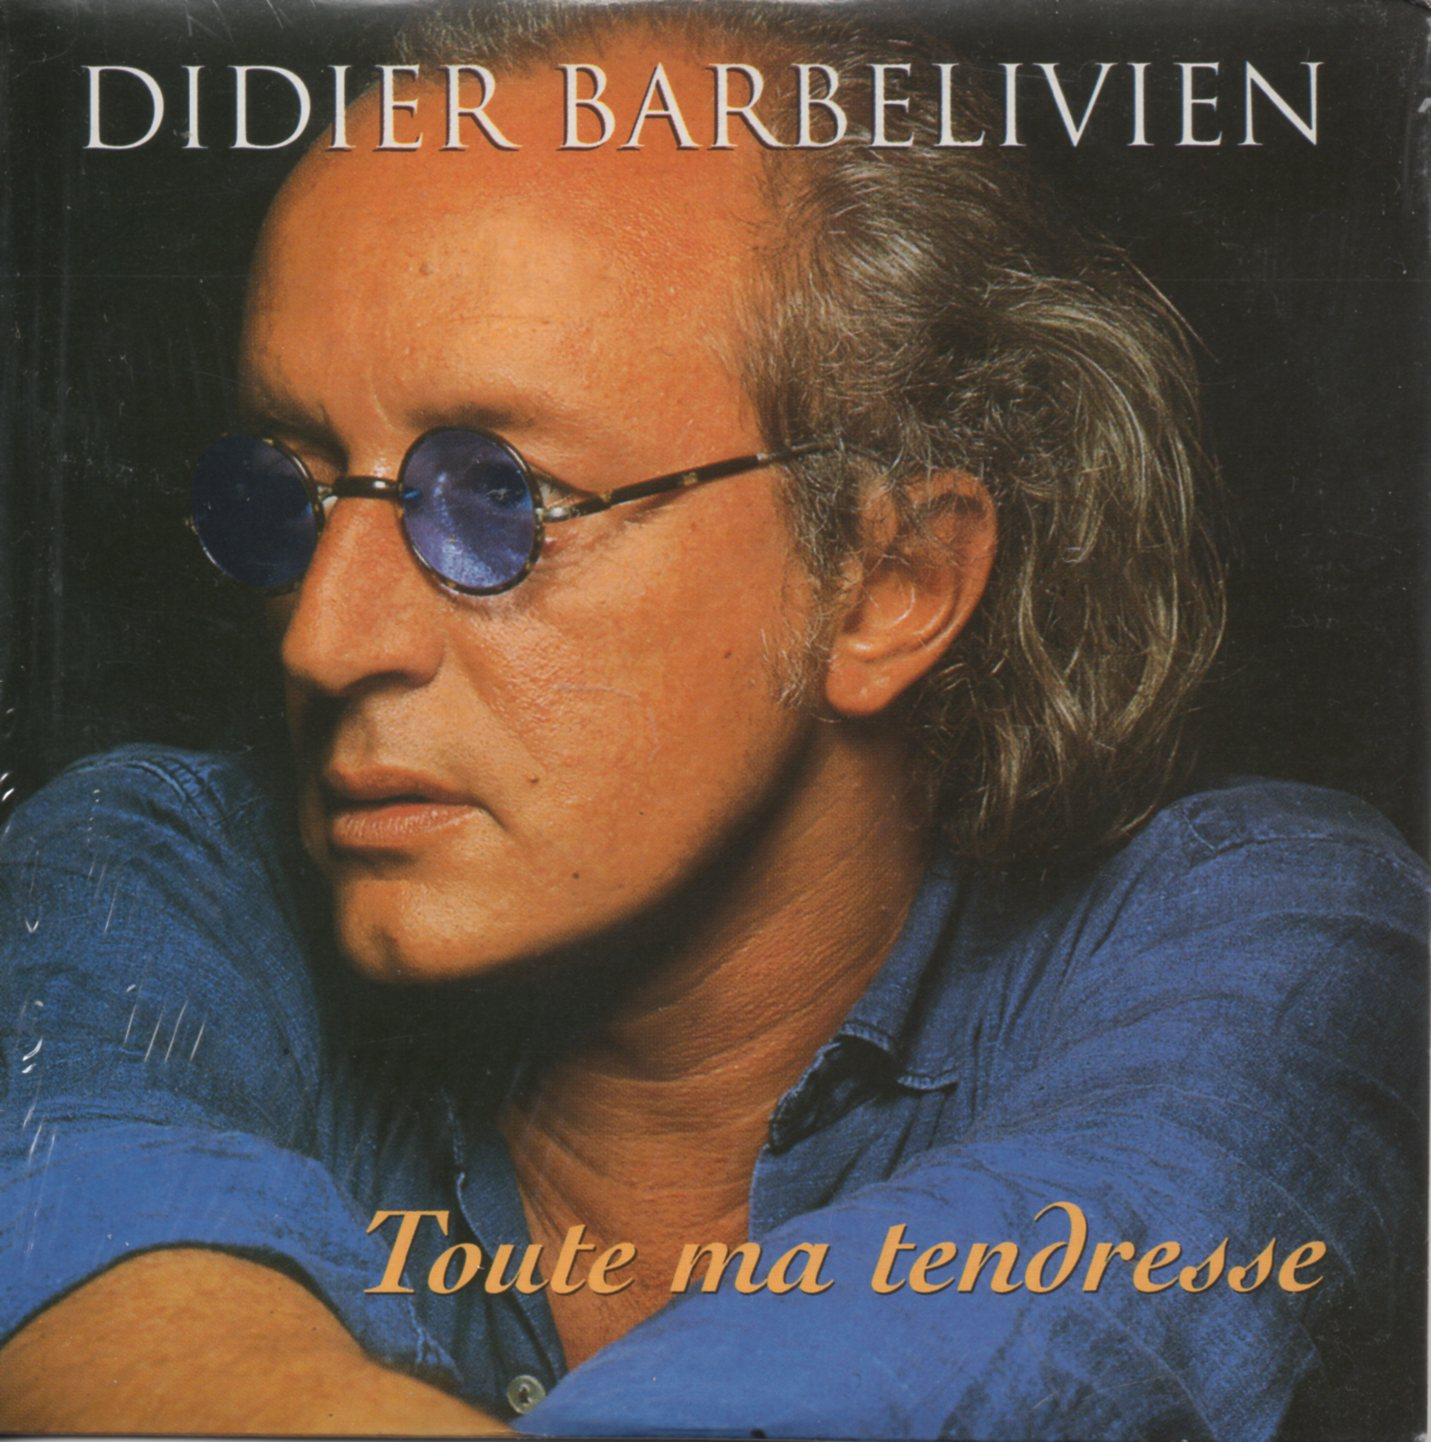 DIDIER BARBELIVIEN - Toute ma tendresse  2-Track CARD SLEEVE - CD single